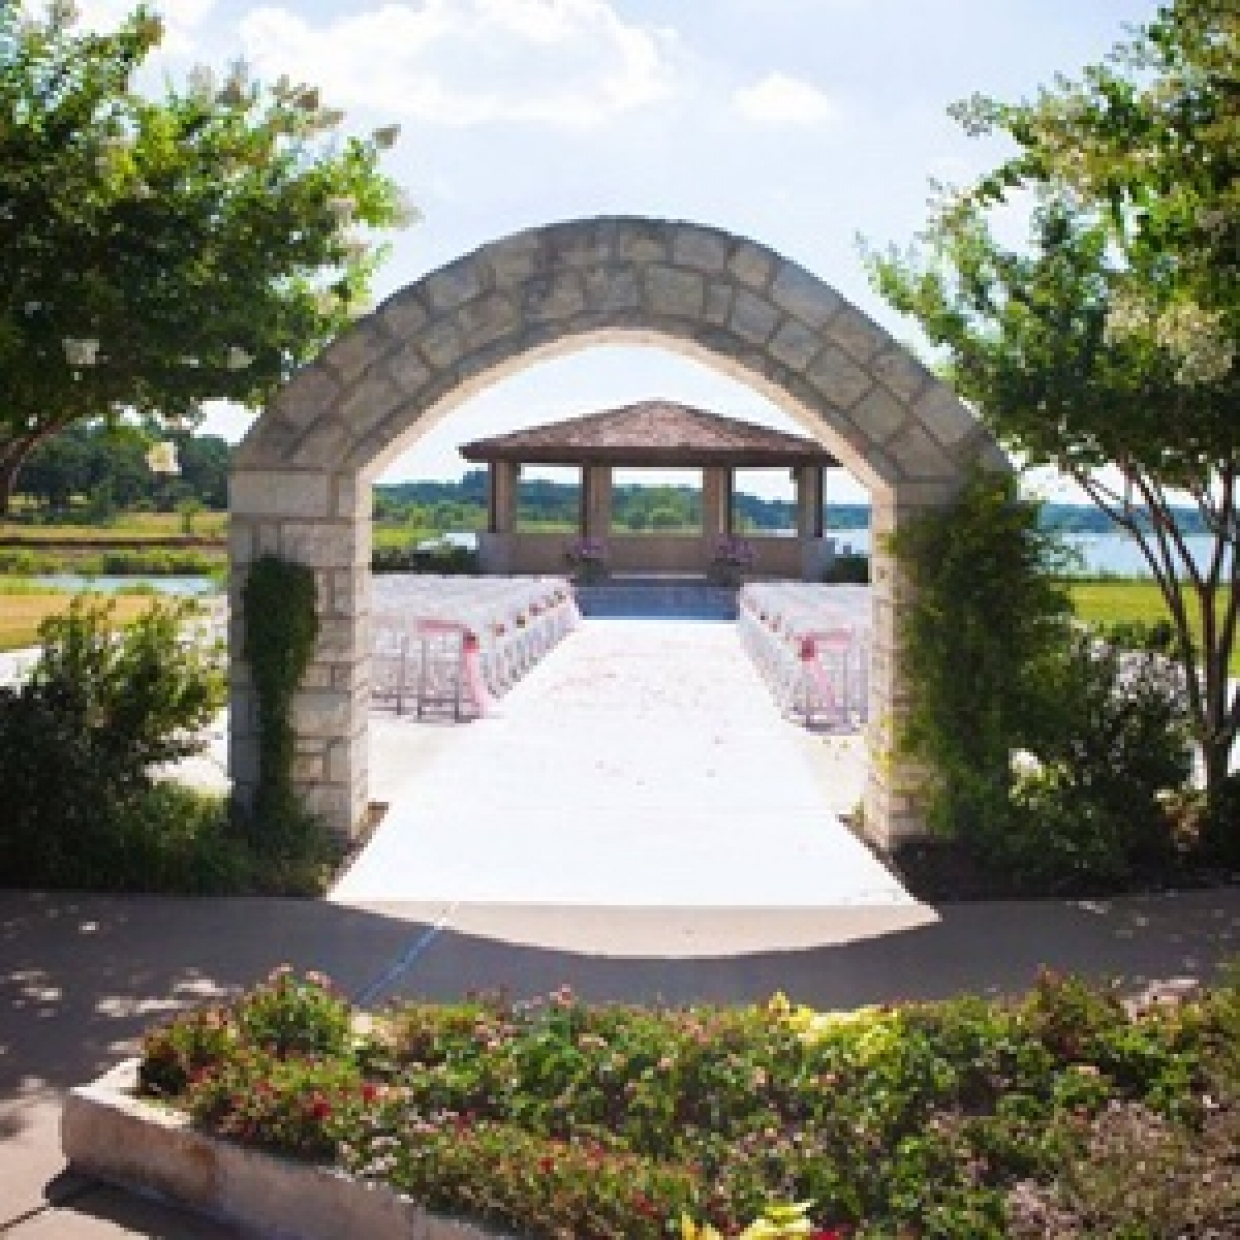 Paradise cove grapevine southlake dallas fort worth weddings wedding04 junglespirit